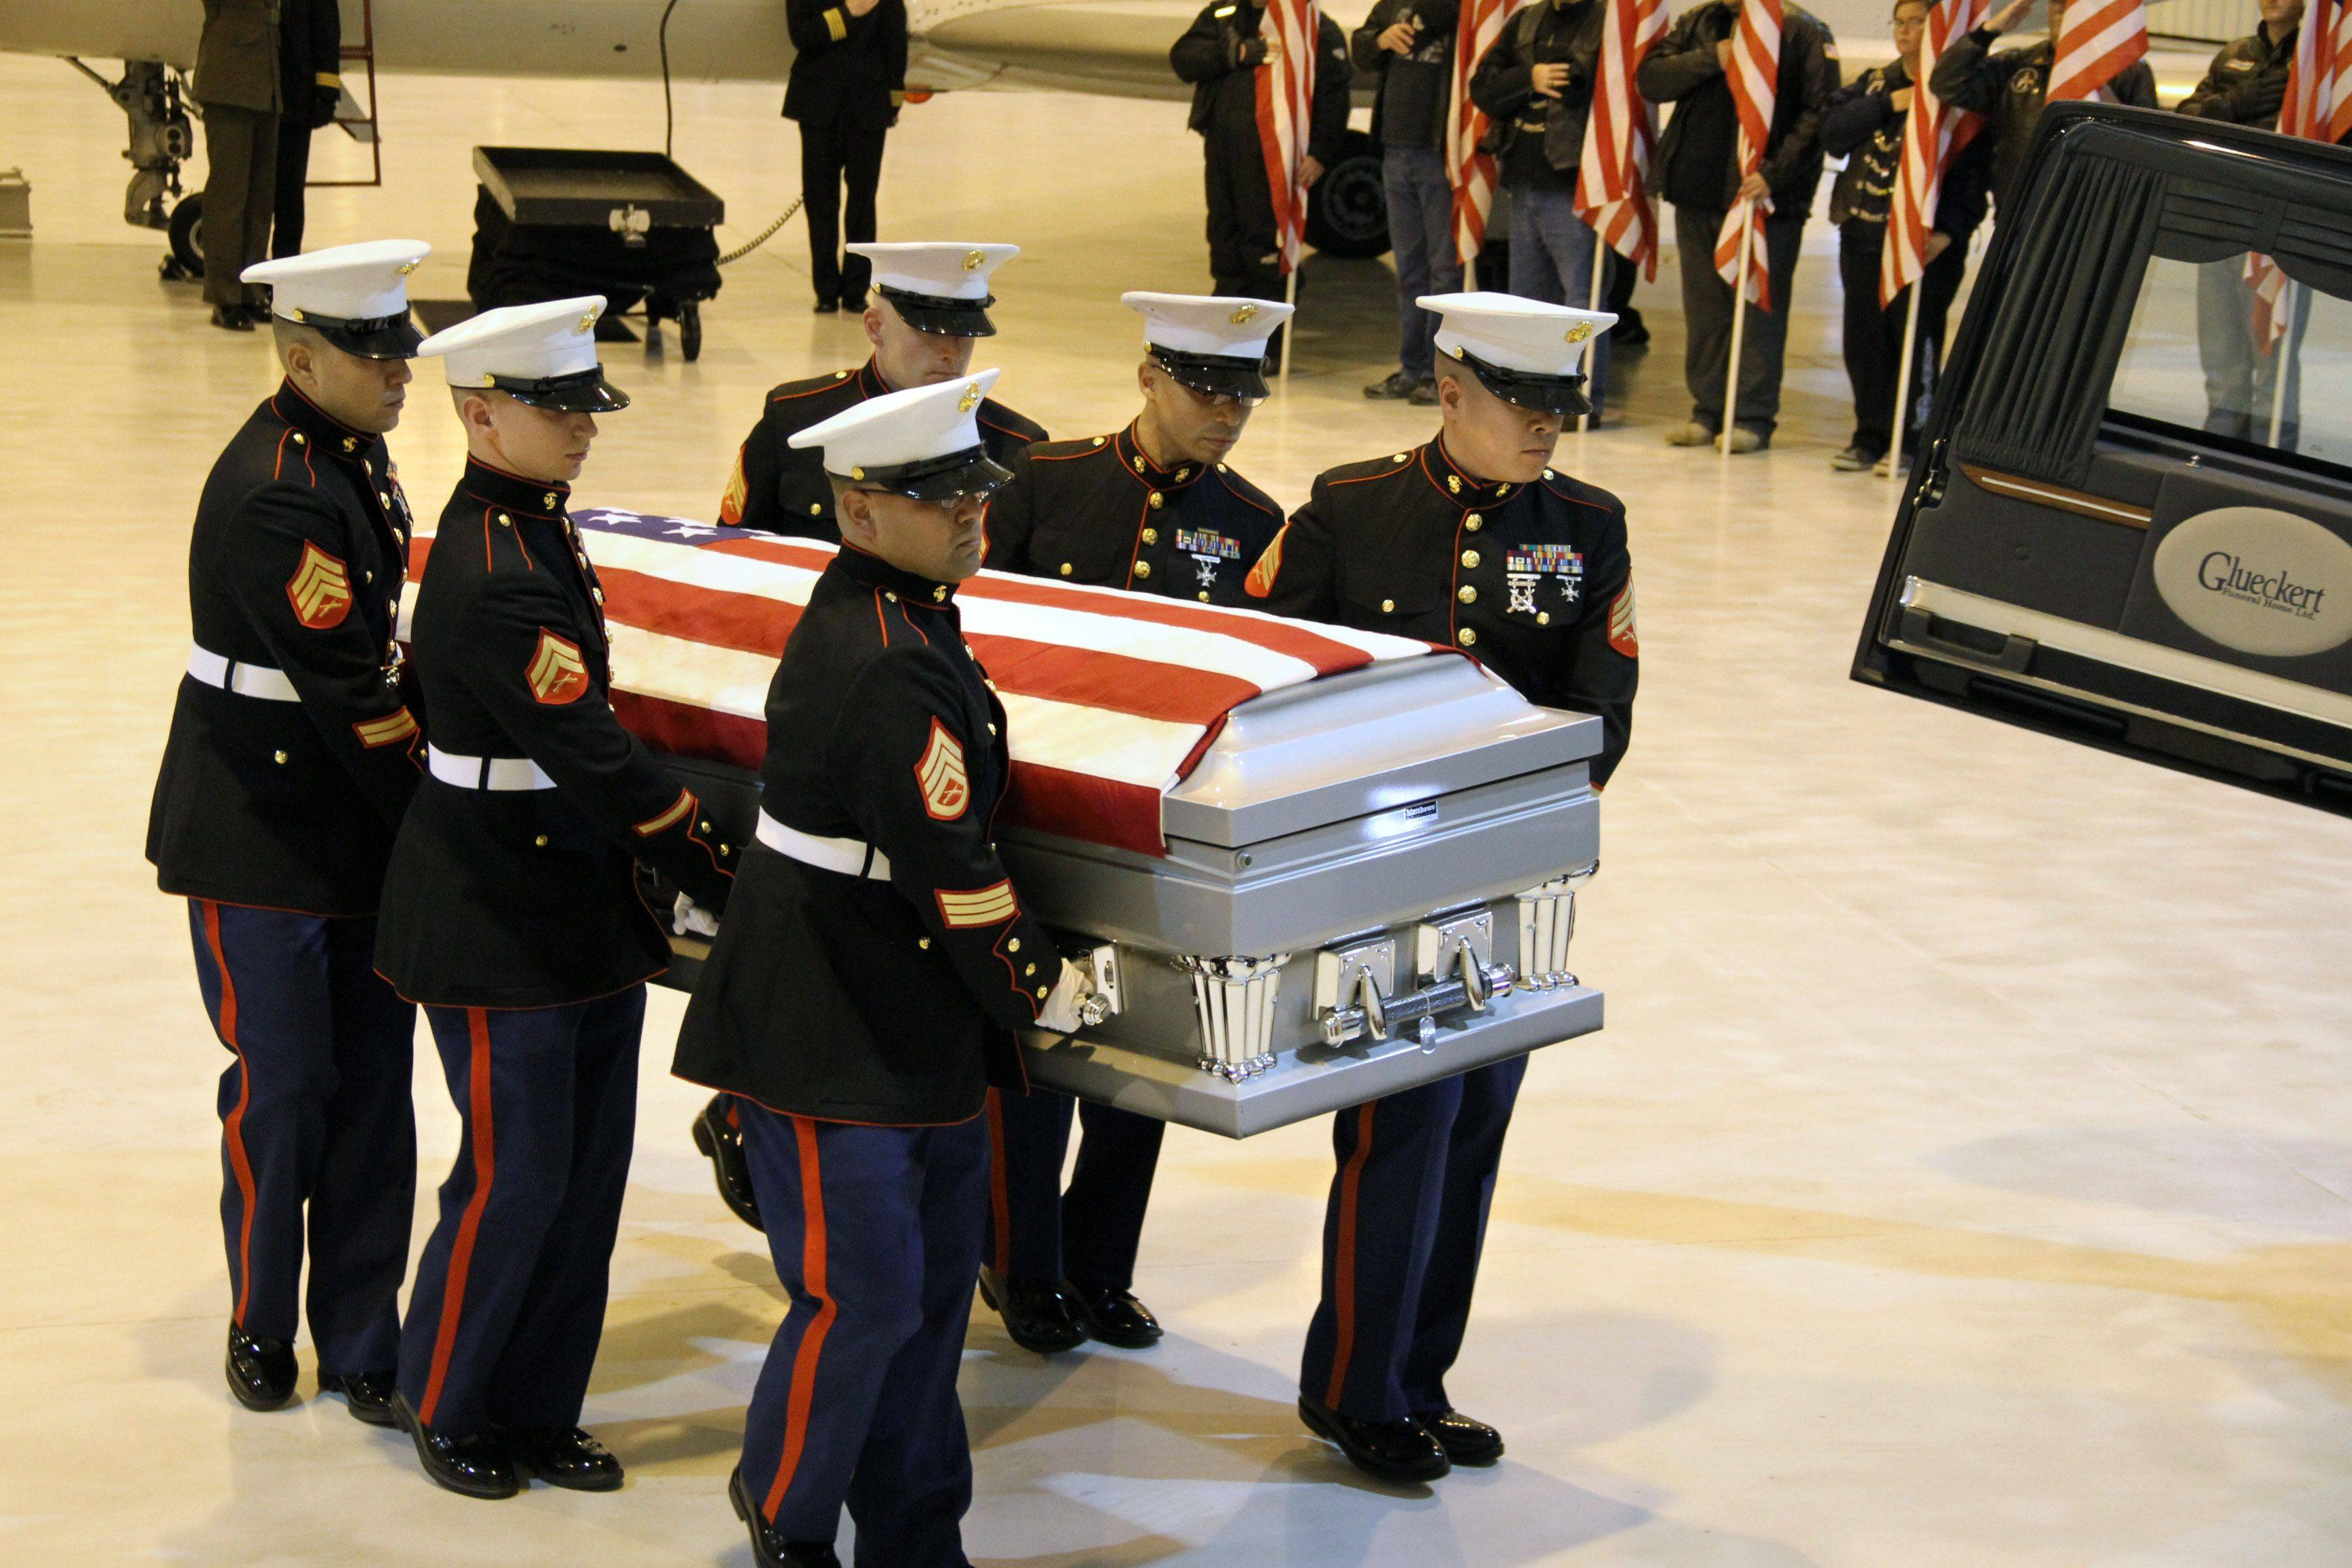 George LeClaire/gleclaire@dailyherald.comA Marine Corps team carries the flag-draped casket of Marine Lance Cpl. James Stack, 20, of Arlington Heights at Chicago Executive Airport in Wheeling on Thursday, November 18th.